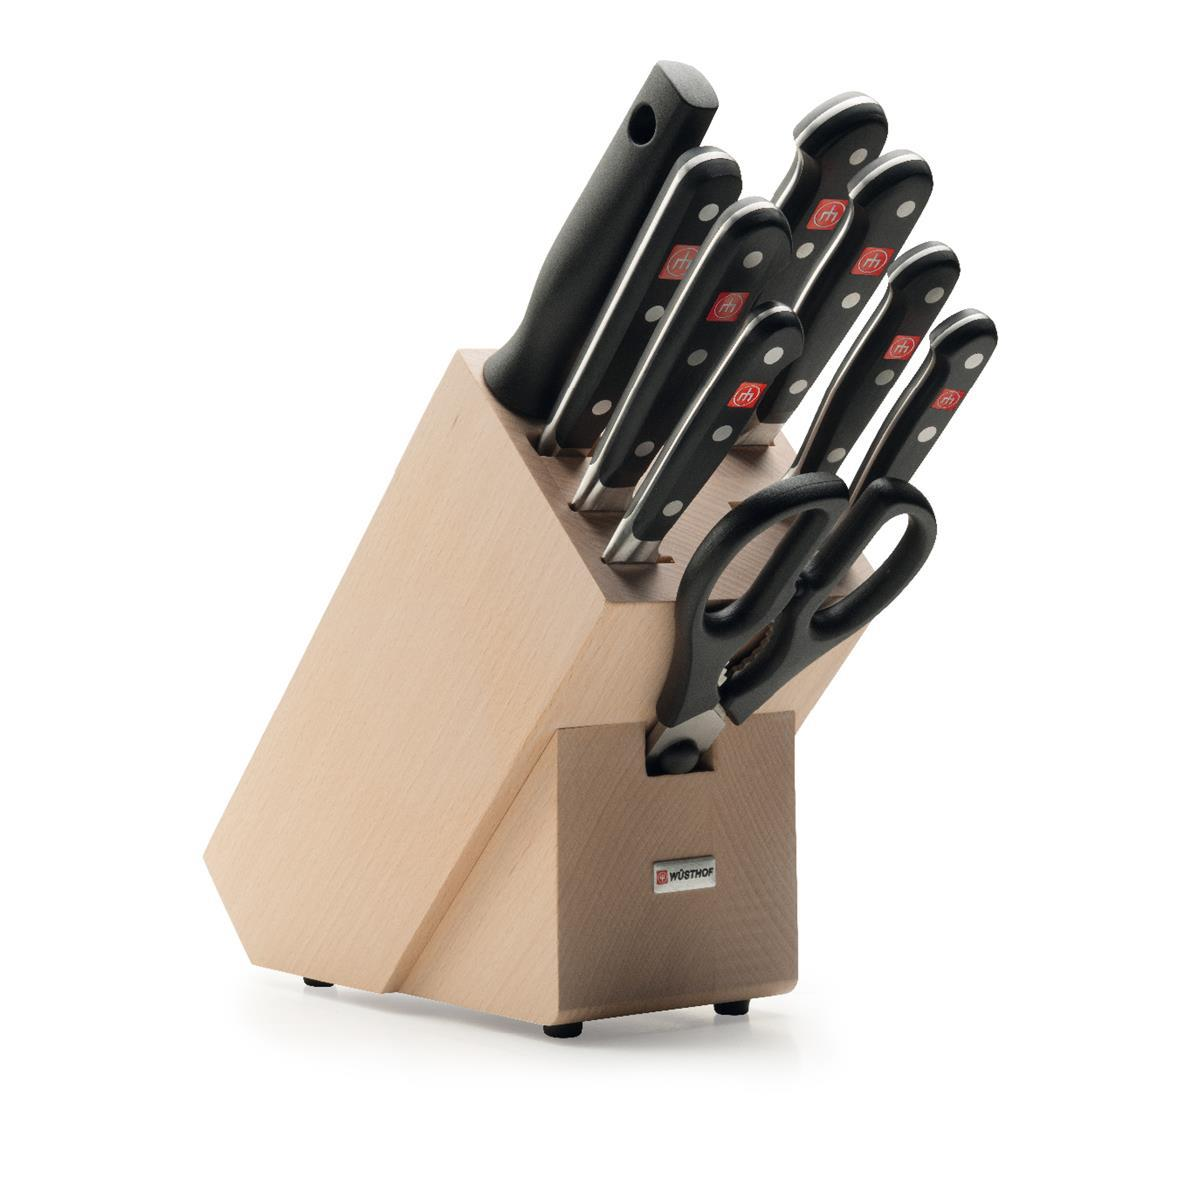 Wusthof Classic Knife Block Set 10 Piece